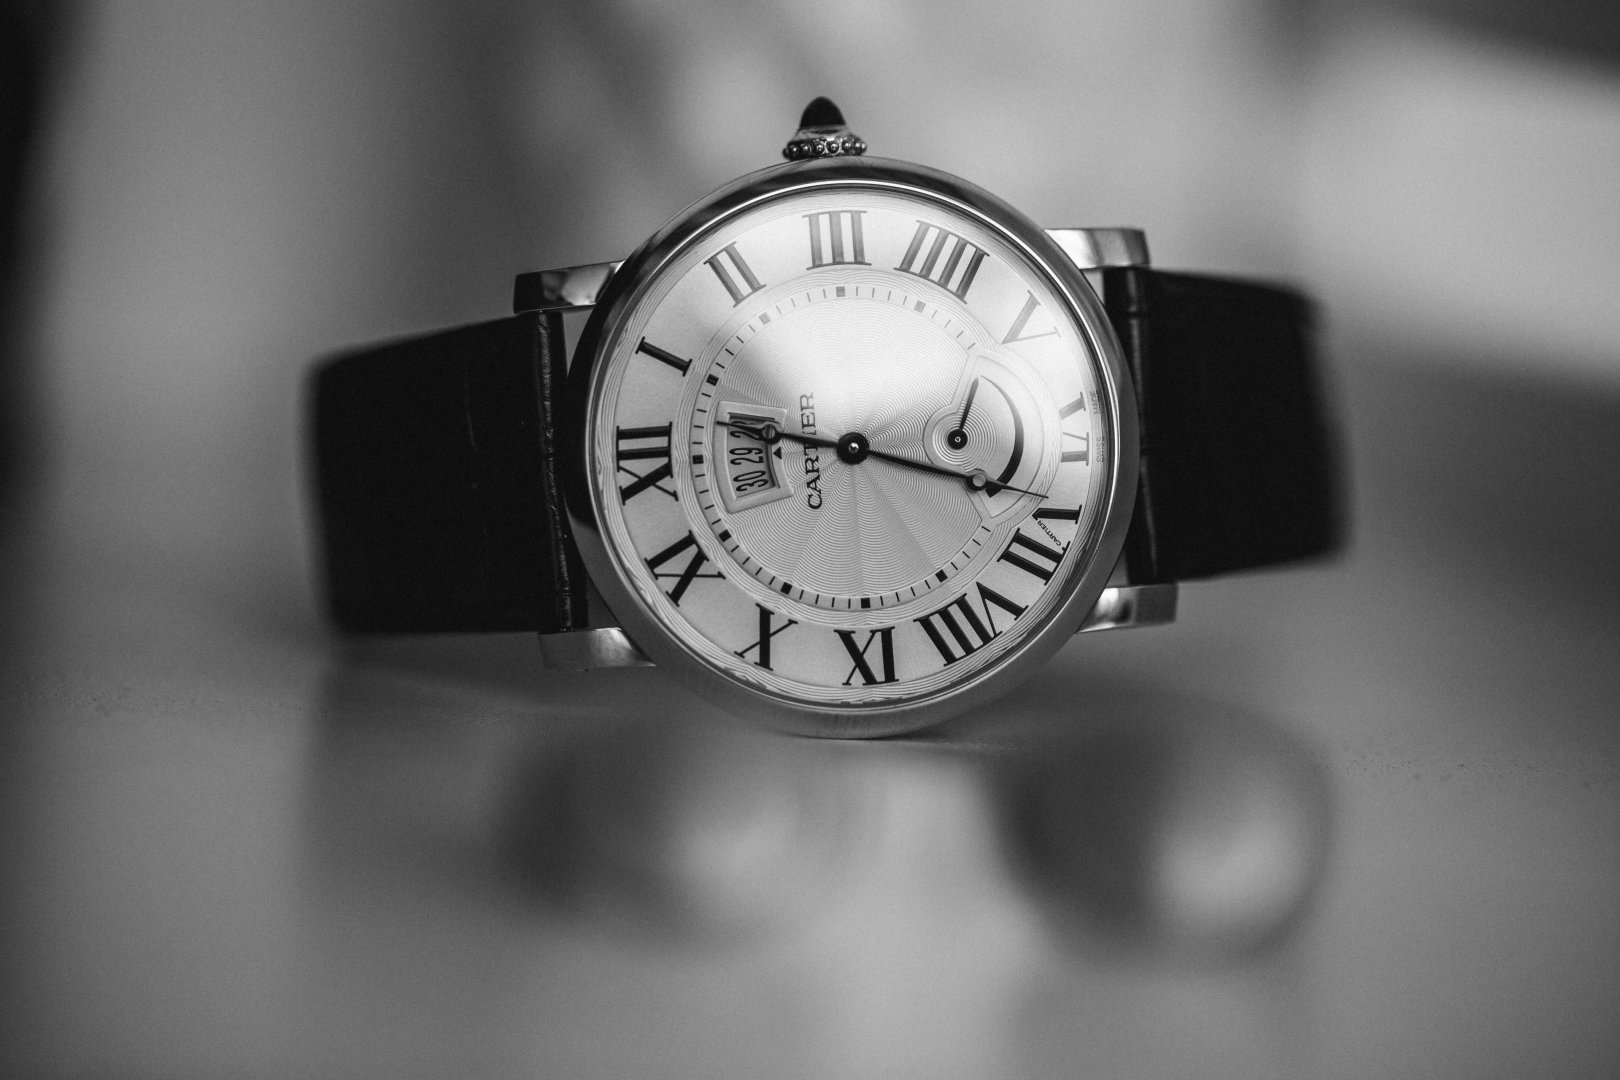 Watch White Black Analog watch Photograph Still life photography Watch accessory Monochrome Fashion accessory Black-and-white Jewellery Photography Close-up Material property Font Silver Monochrome photography Strap Brand Stock photography Clock Style Hardware accessory Glass Number Metal